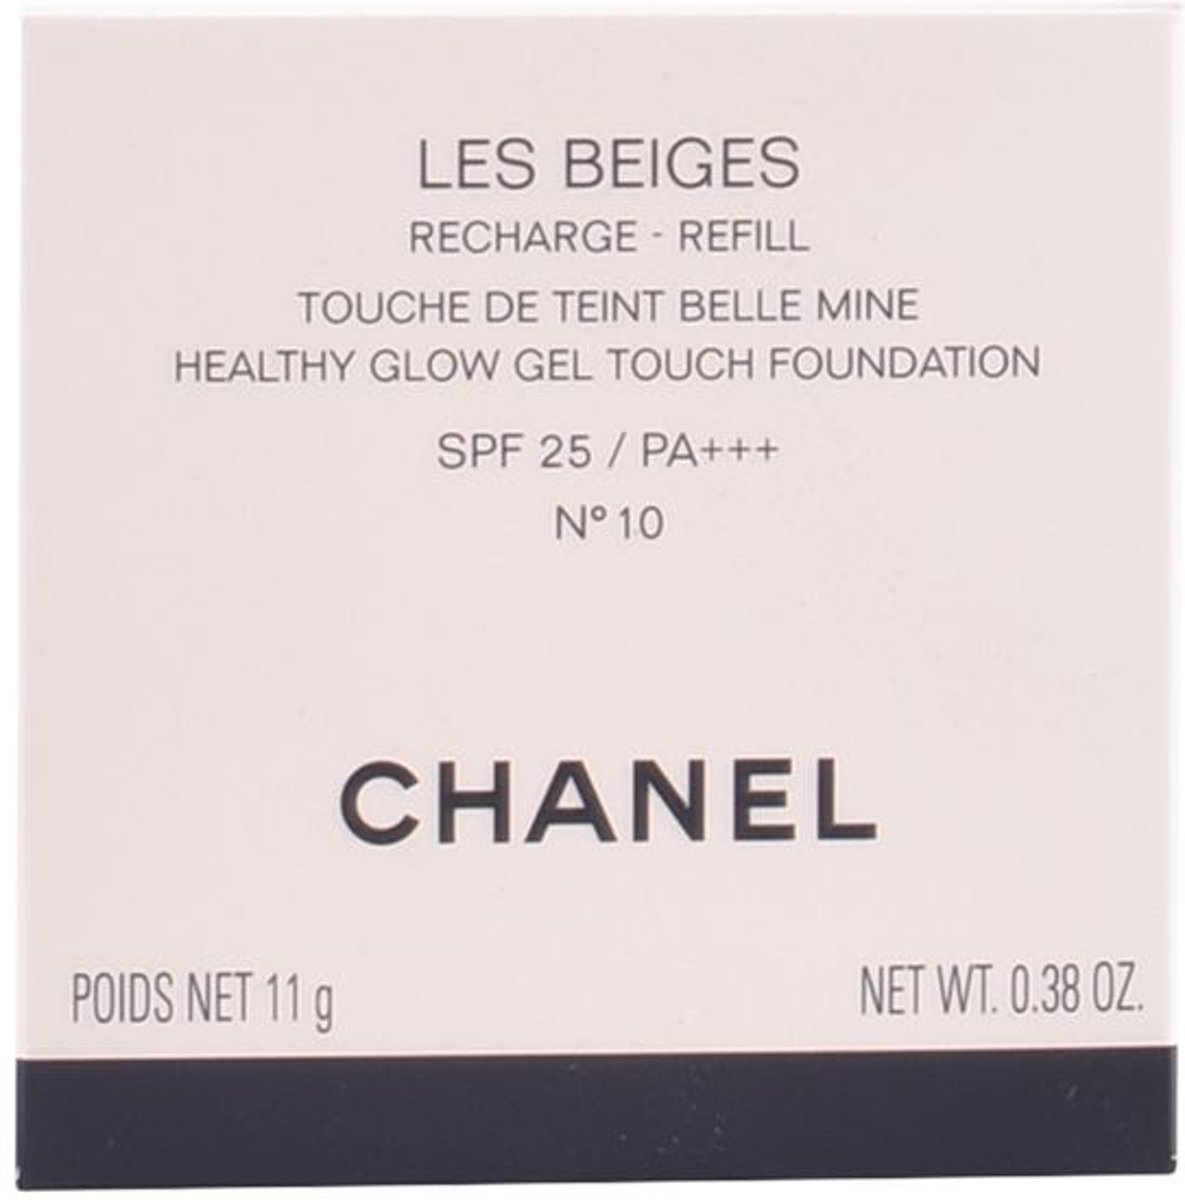 Make-up Foundation Les Beiges Chanel Spf 25